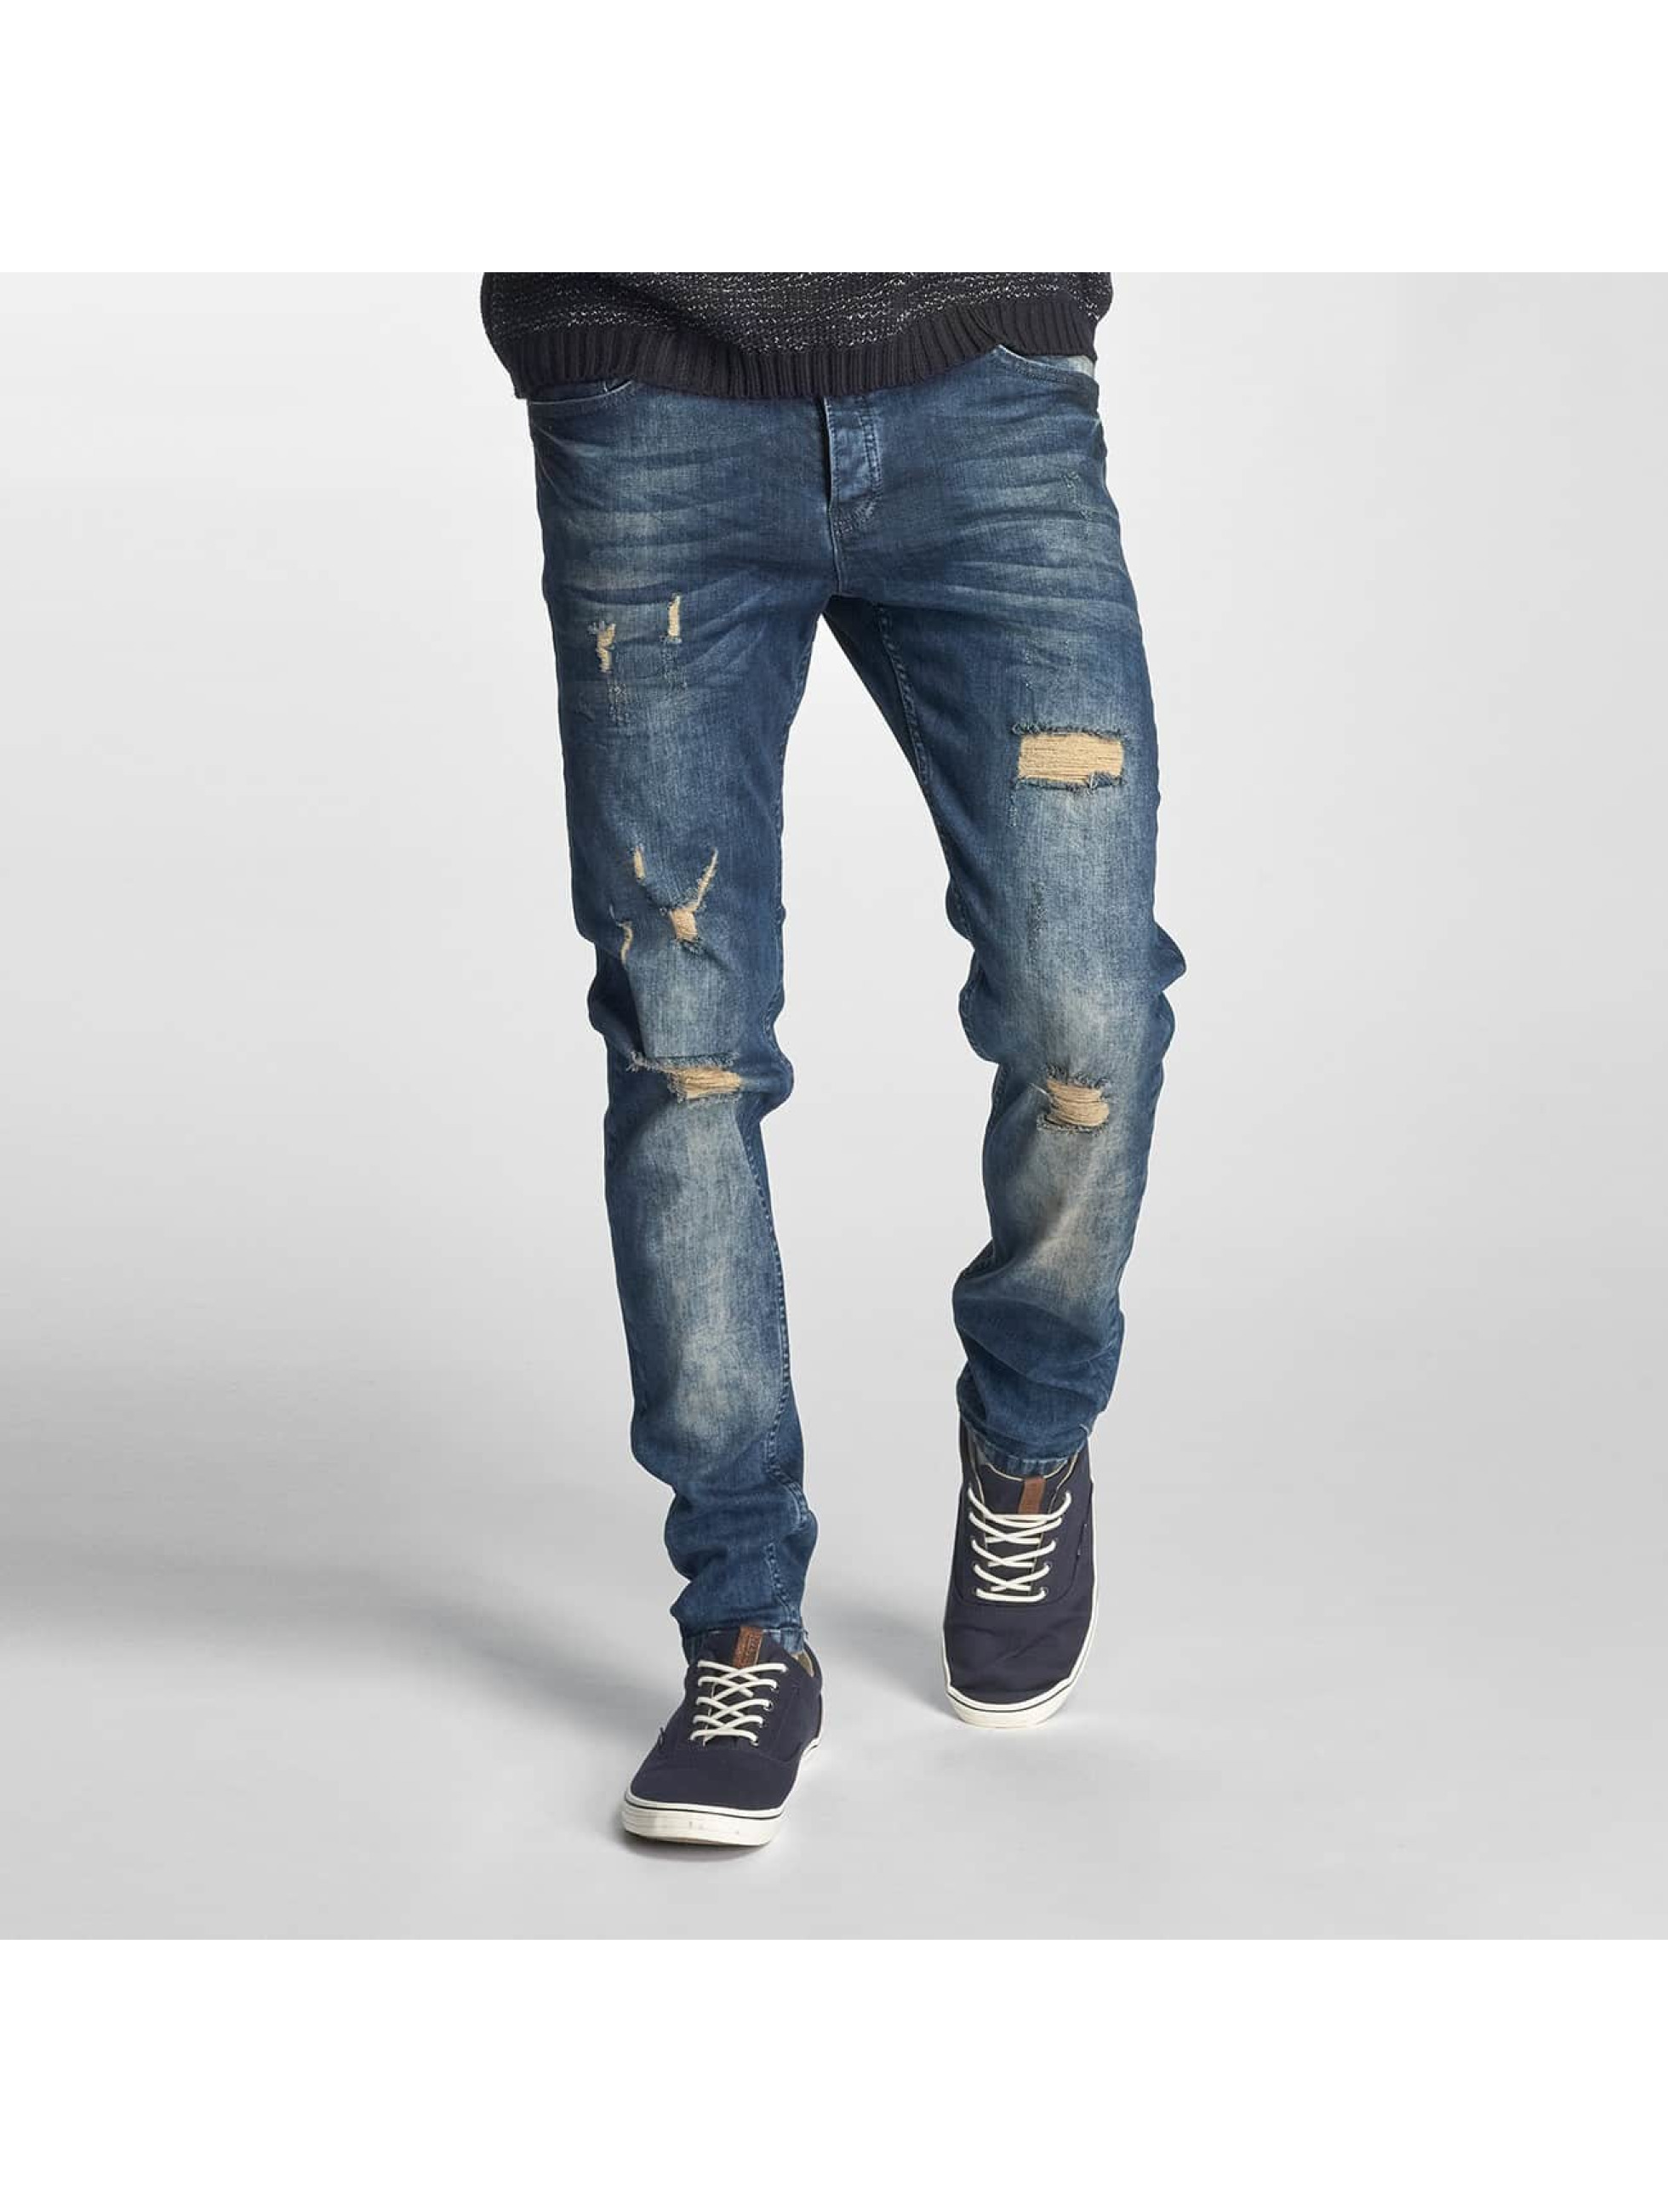 Just Rhyse Destroyed bleu Jean coupe droite homme